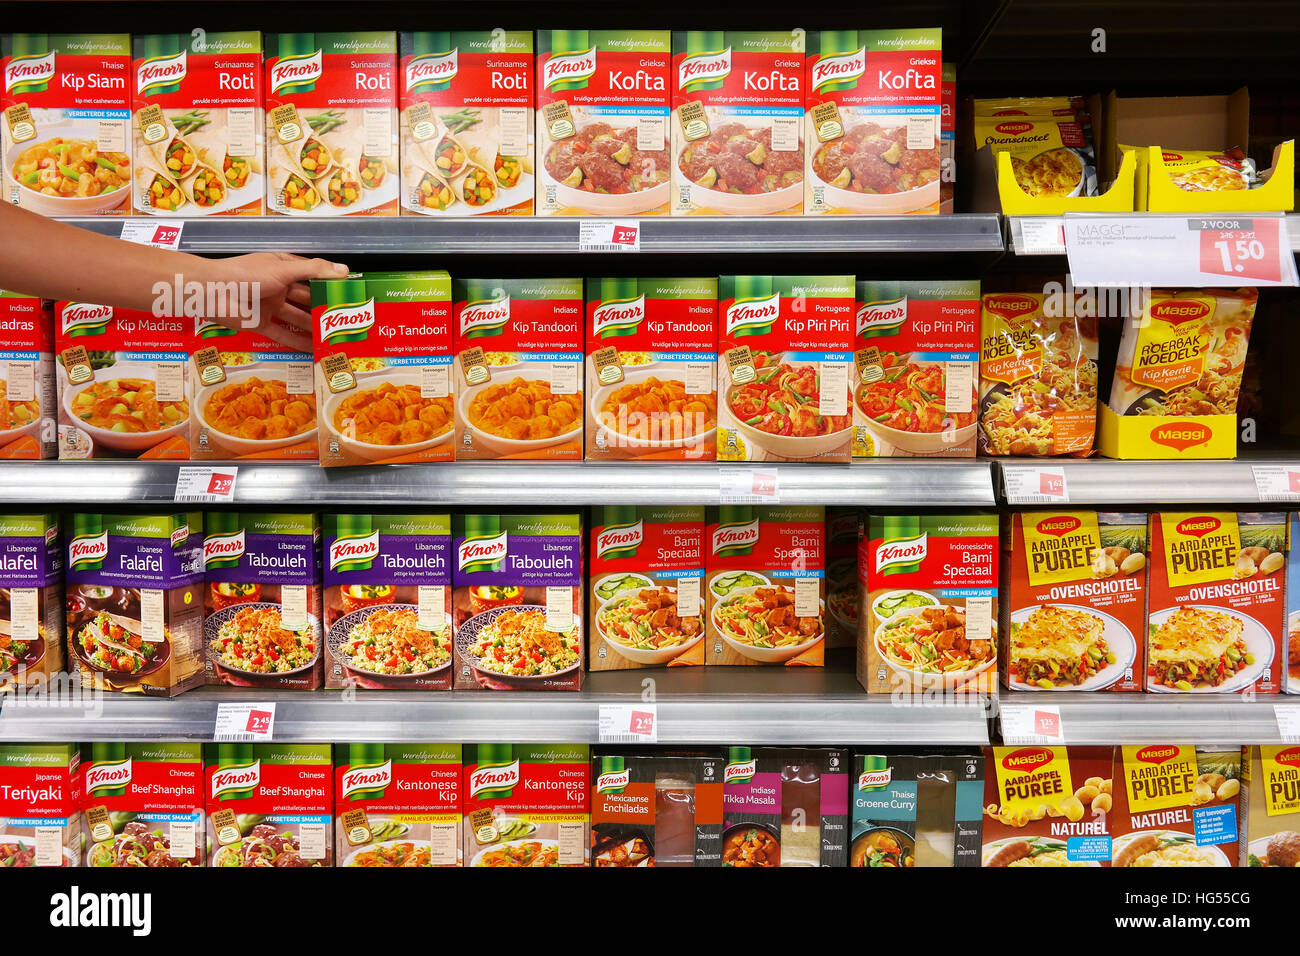 Knorr instant food packings in a supermarket - Stock Image